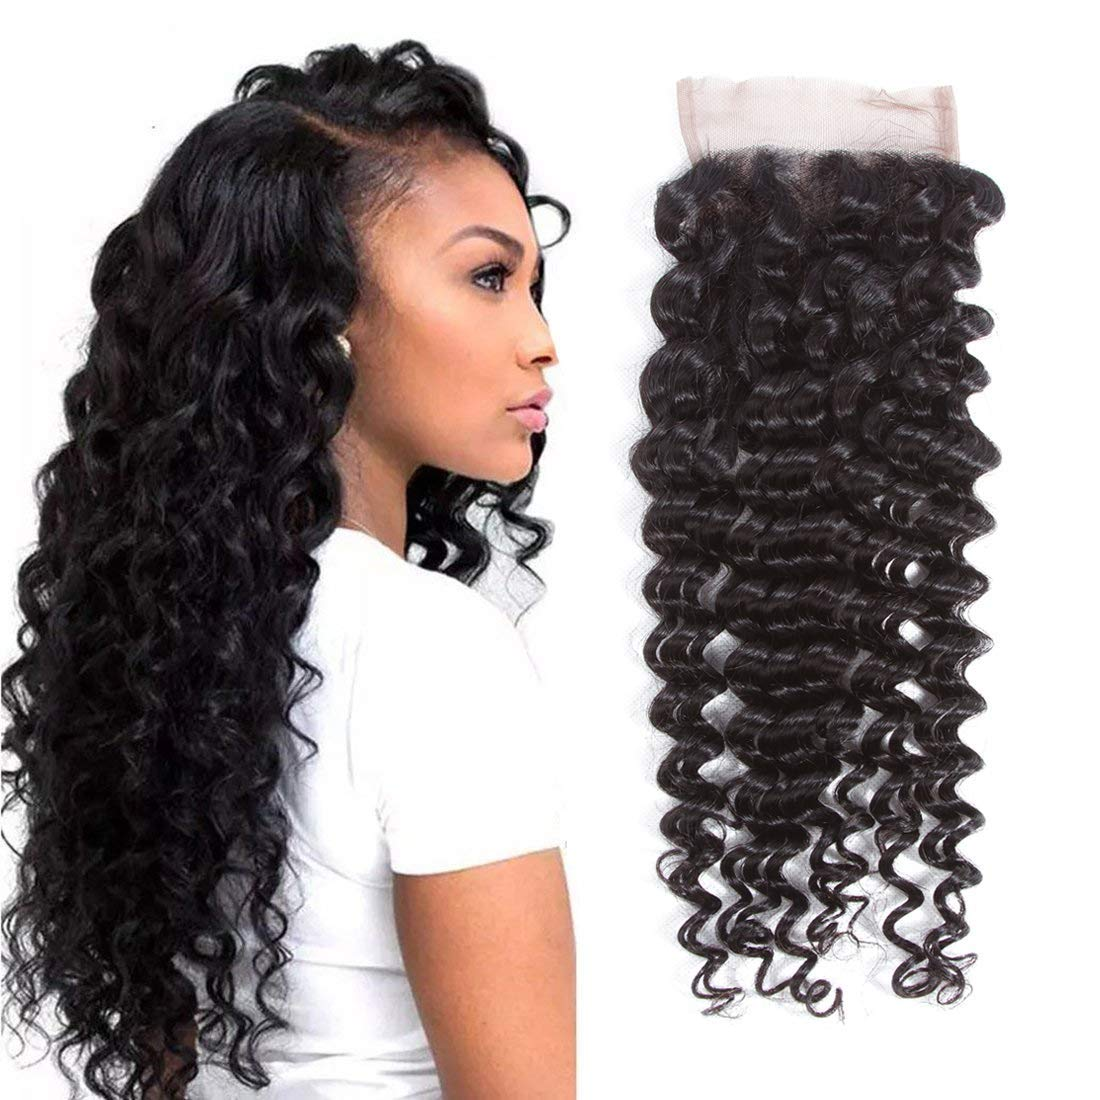 LETMESHINE DEEP WAVE 4*4 OR 5*5 LACE CLOSURE THREE PART MIDDLE PART FREE PART 100% VIRGIN HUMAN HAIR NATURAL COLOR - LetMeShine Hair